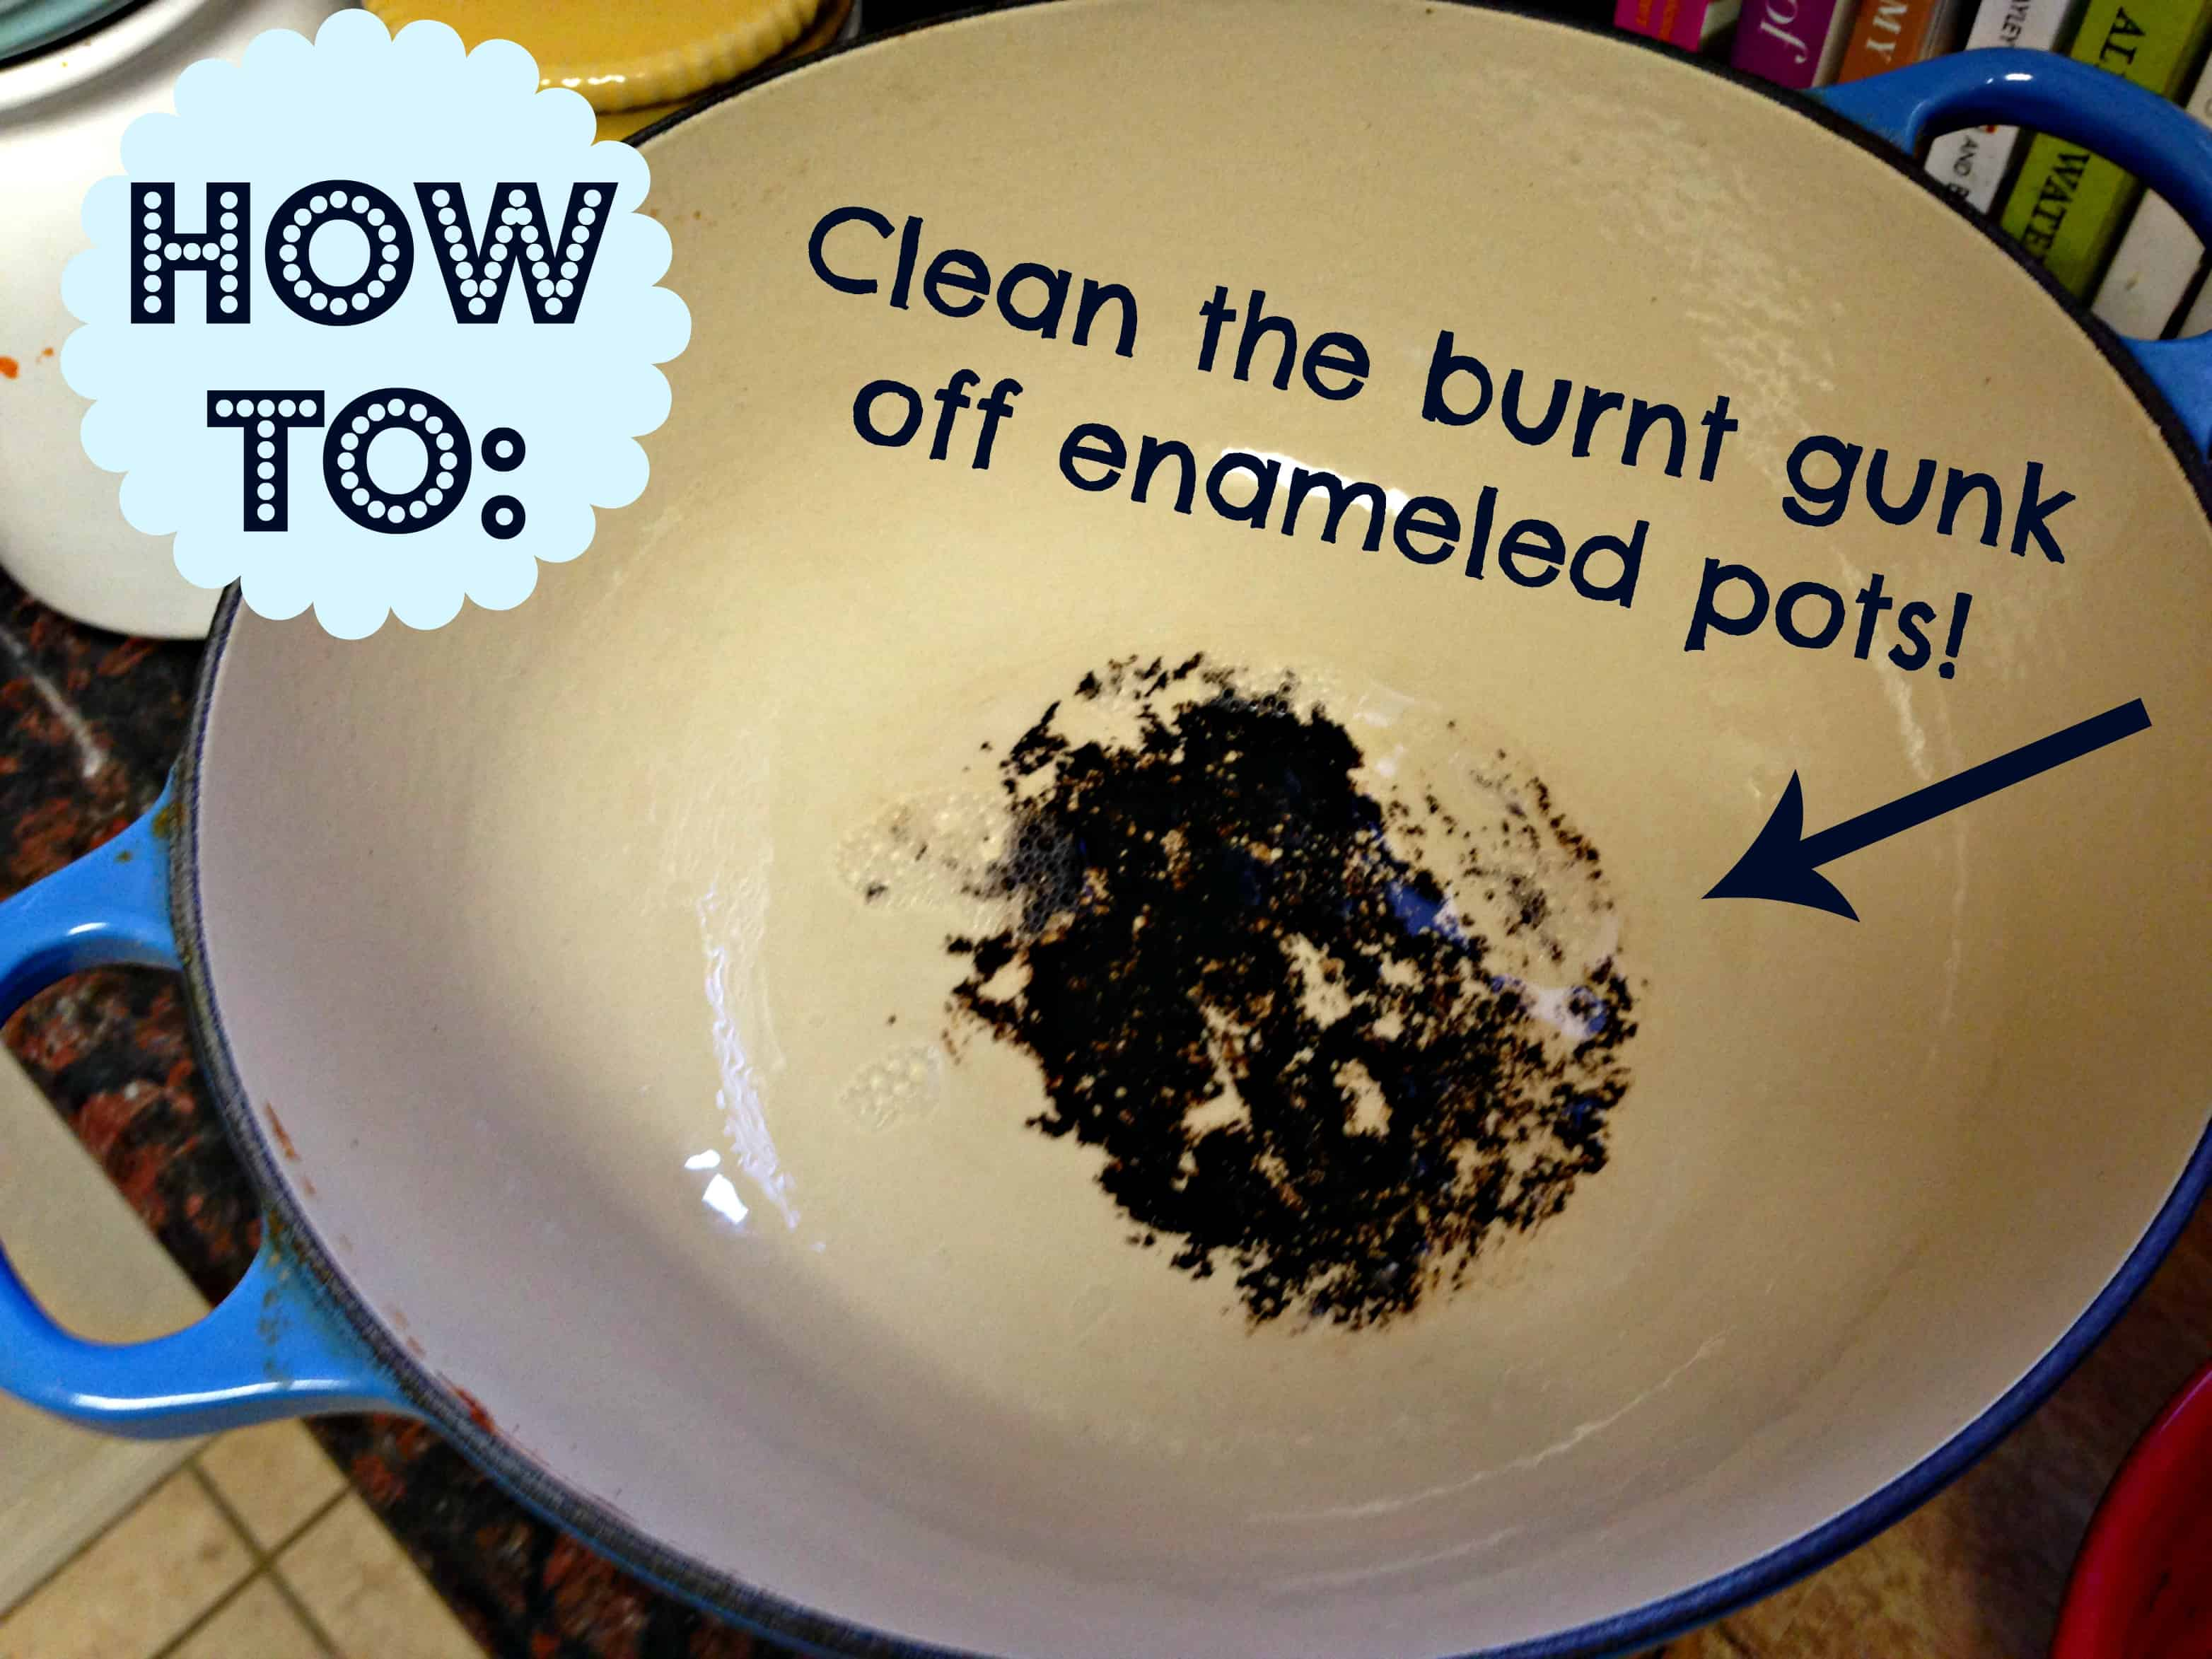 Remove badly burned patches from enamel cookware with barkeeper's friend